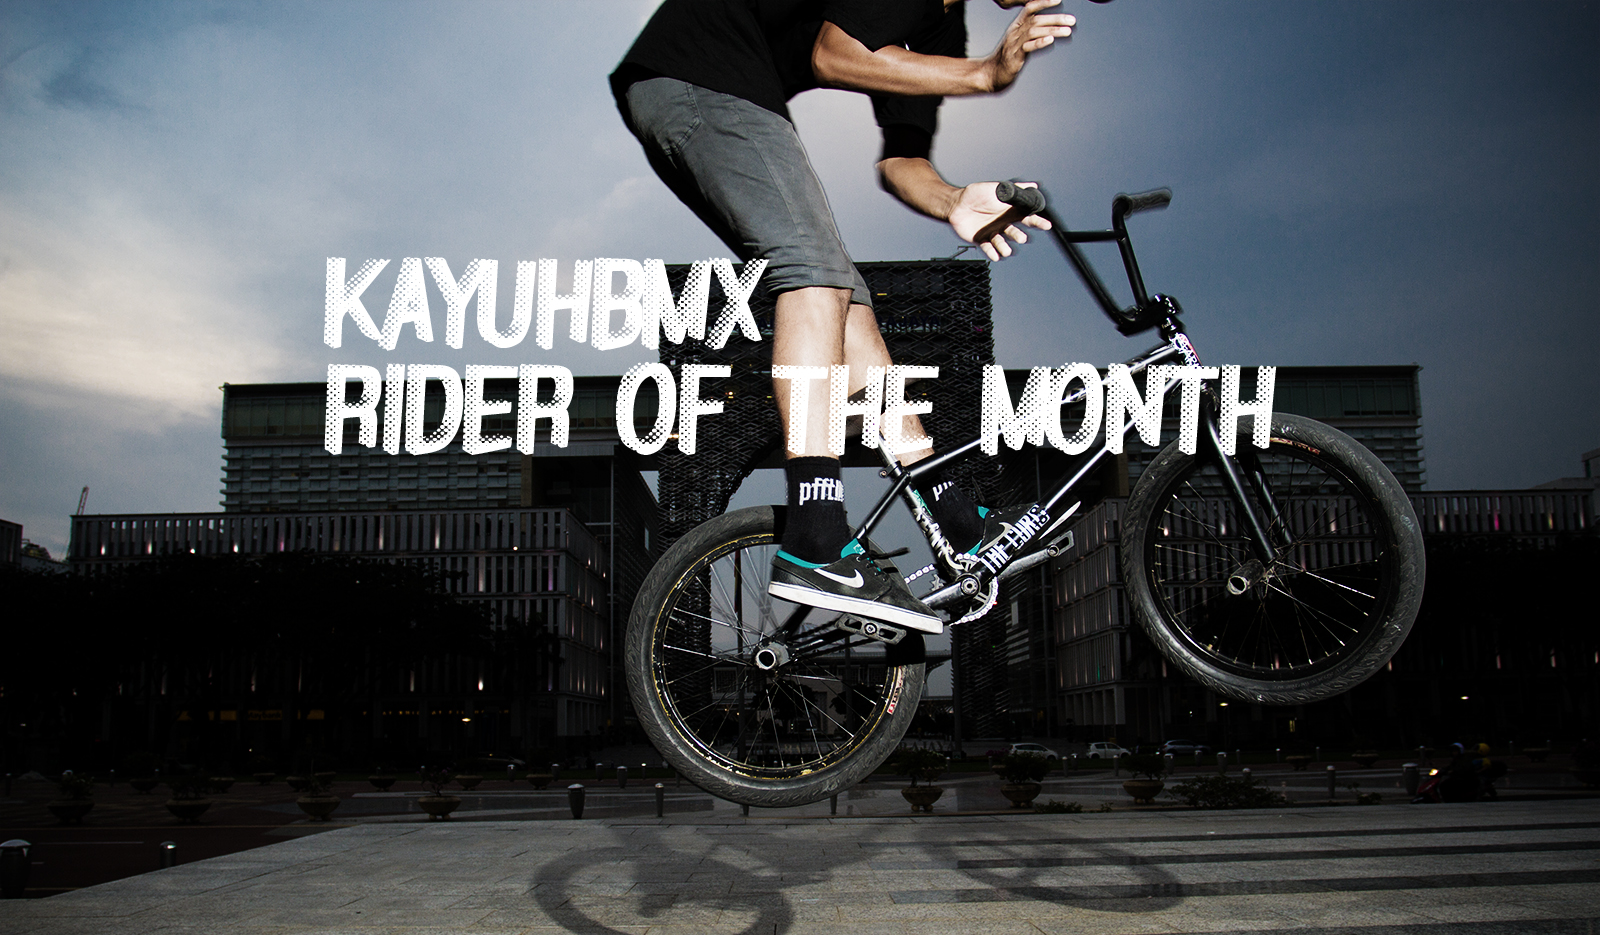 rider of the month